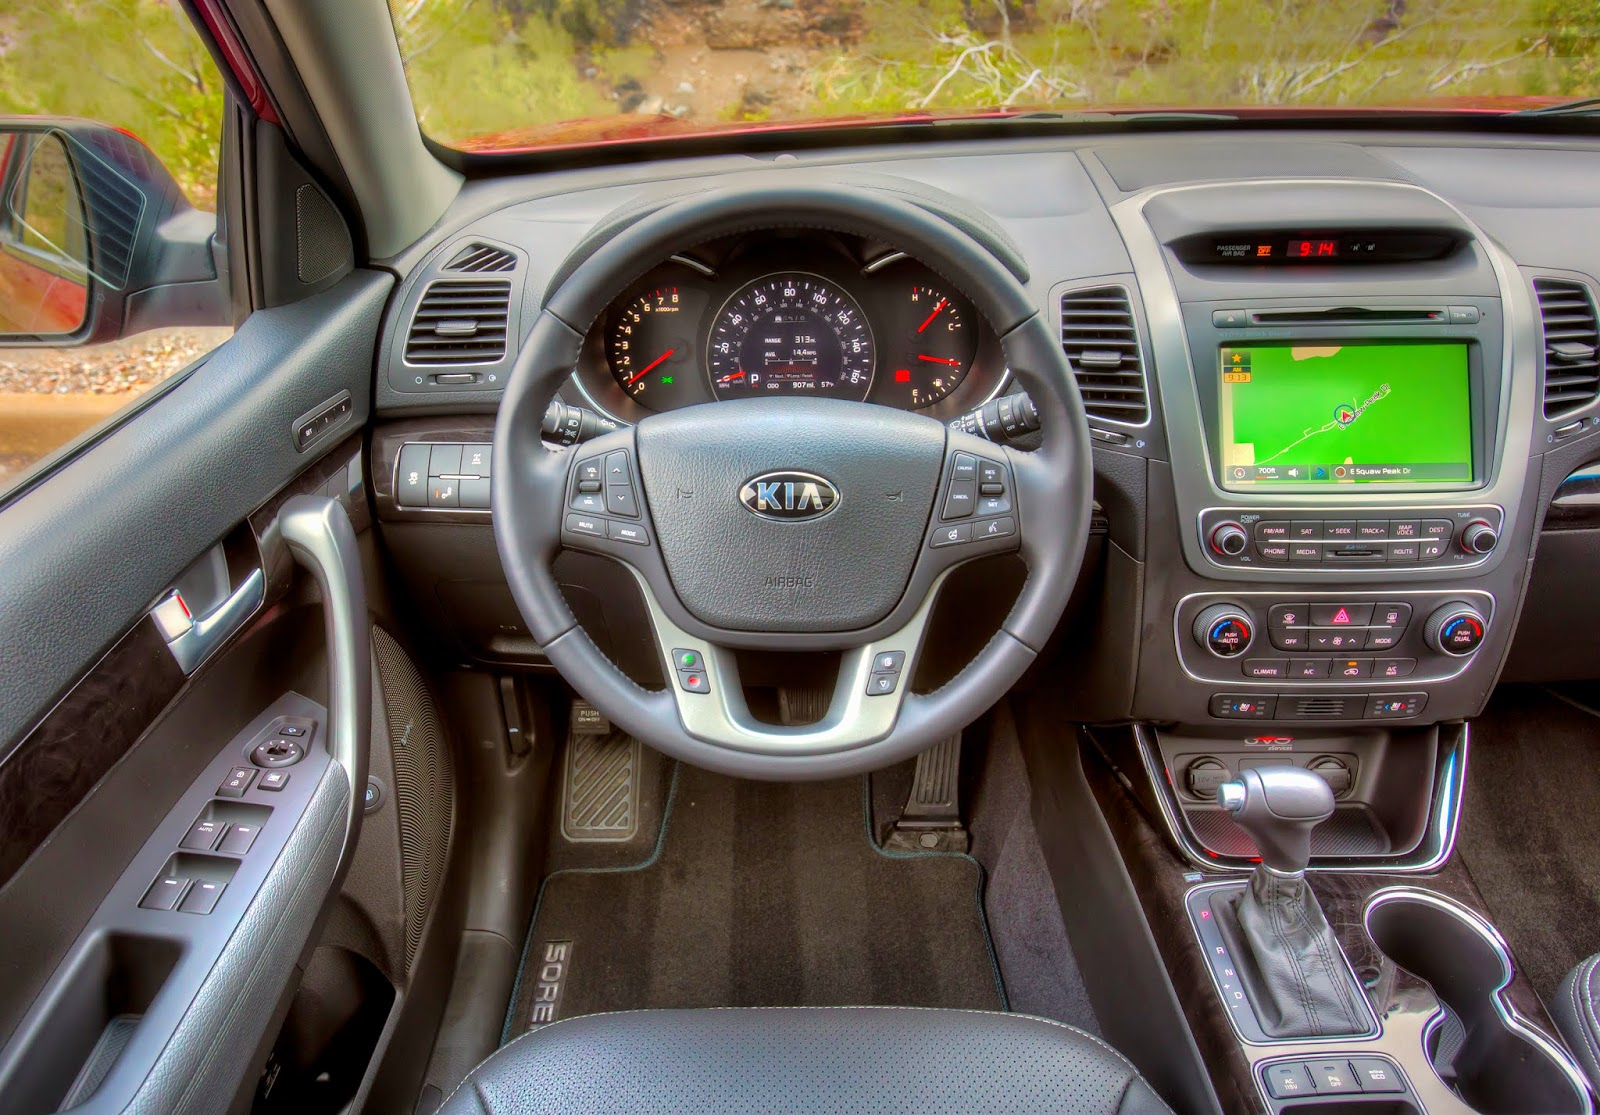 Instrument panel of 2015 Kia Sorento